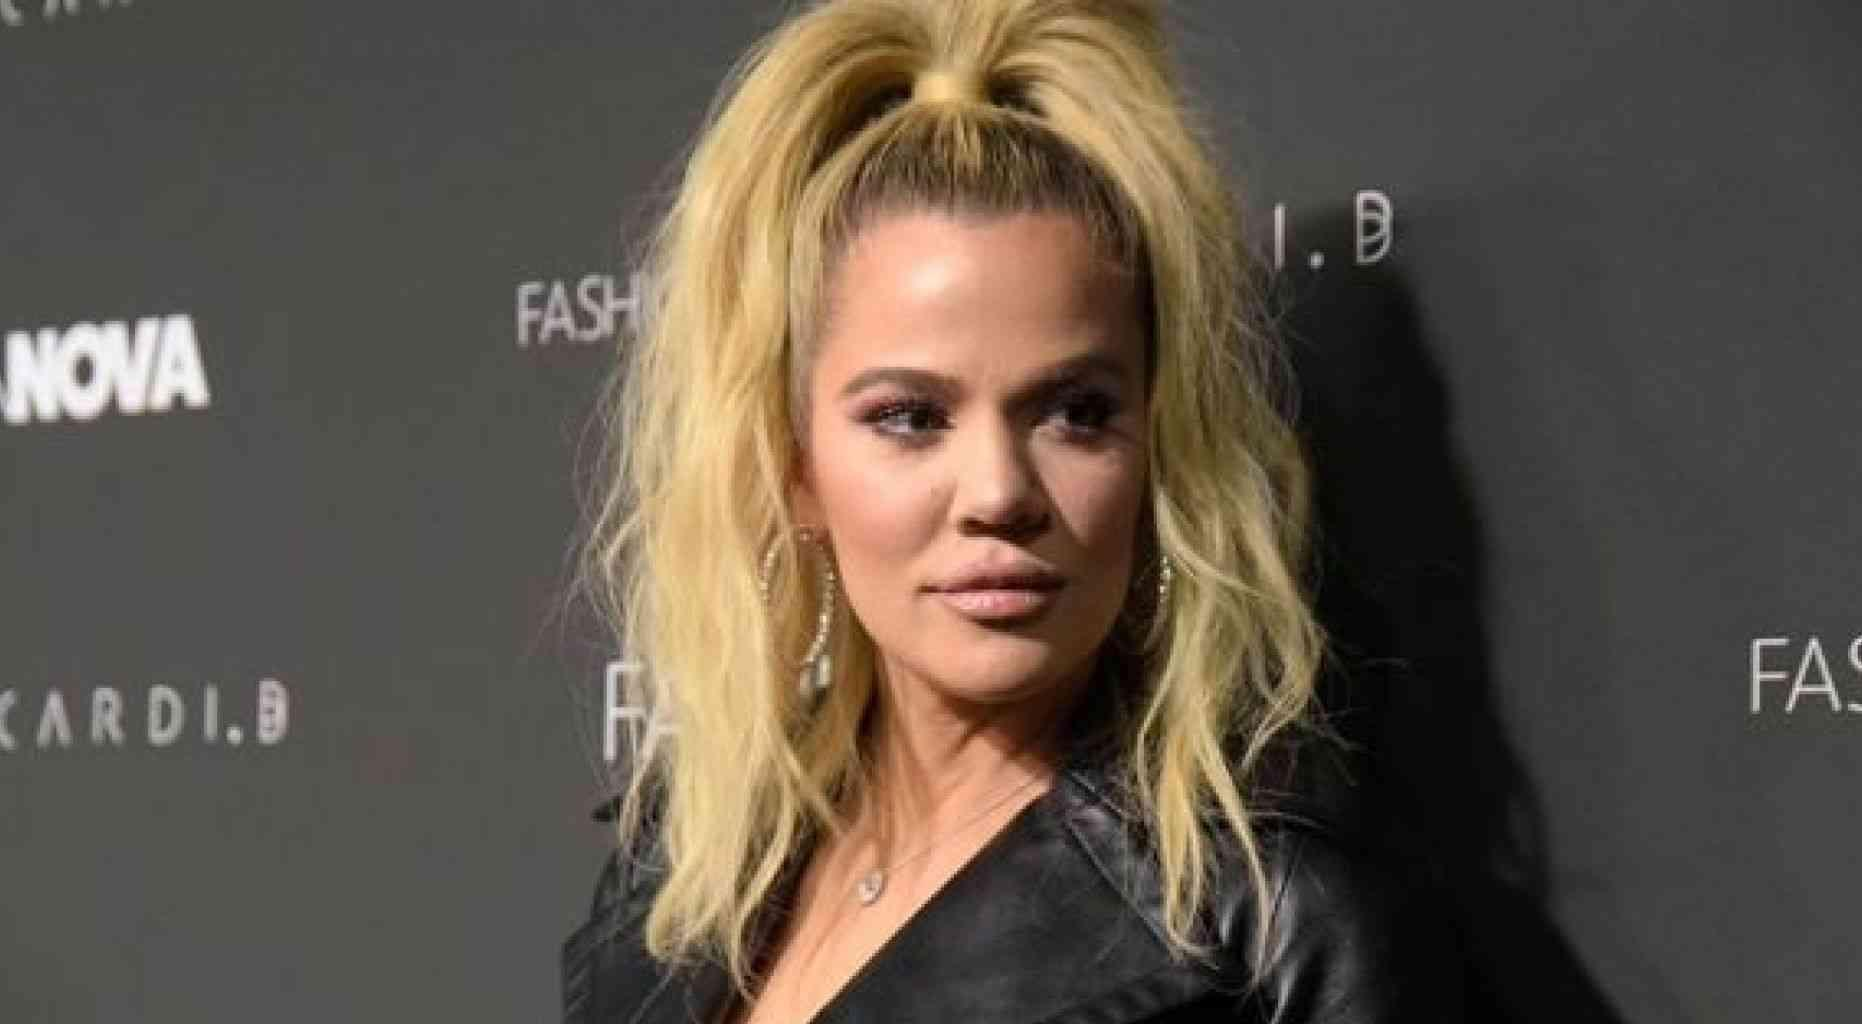 True Thompson Takes Her First Steps As Fans Send Encouraging Words To Khloe Kardashian